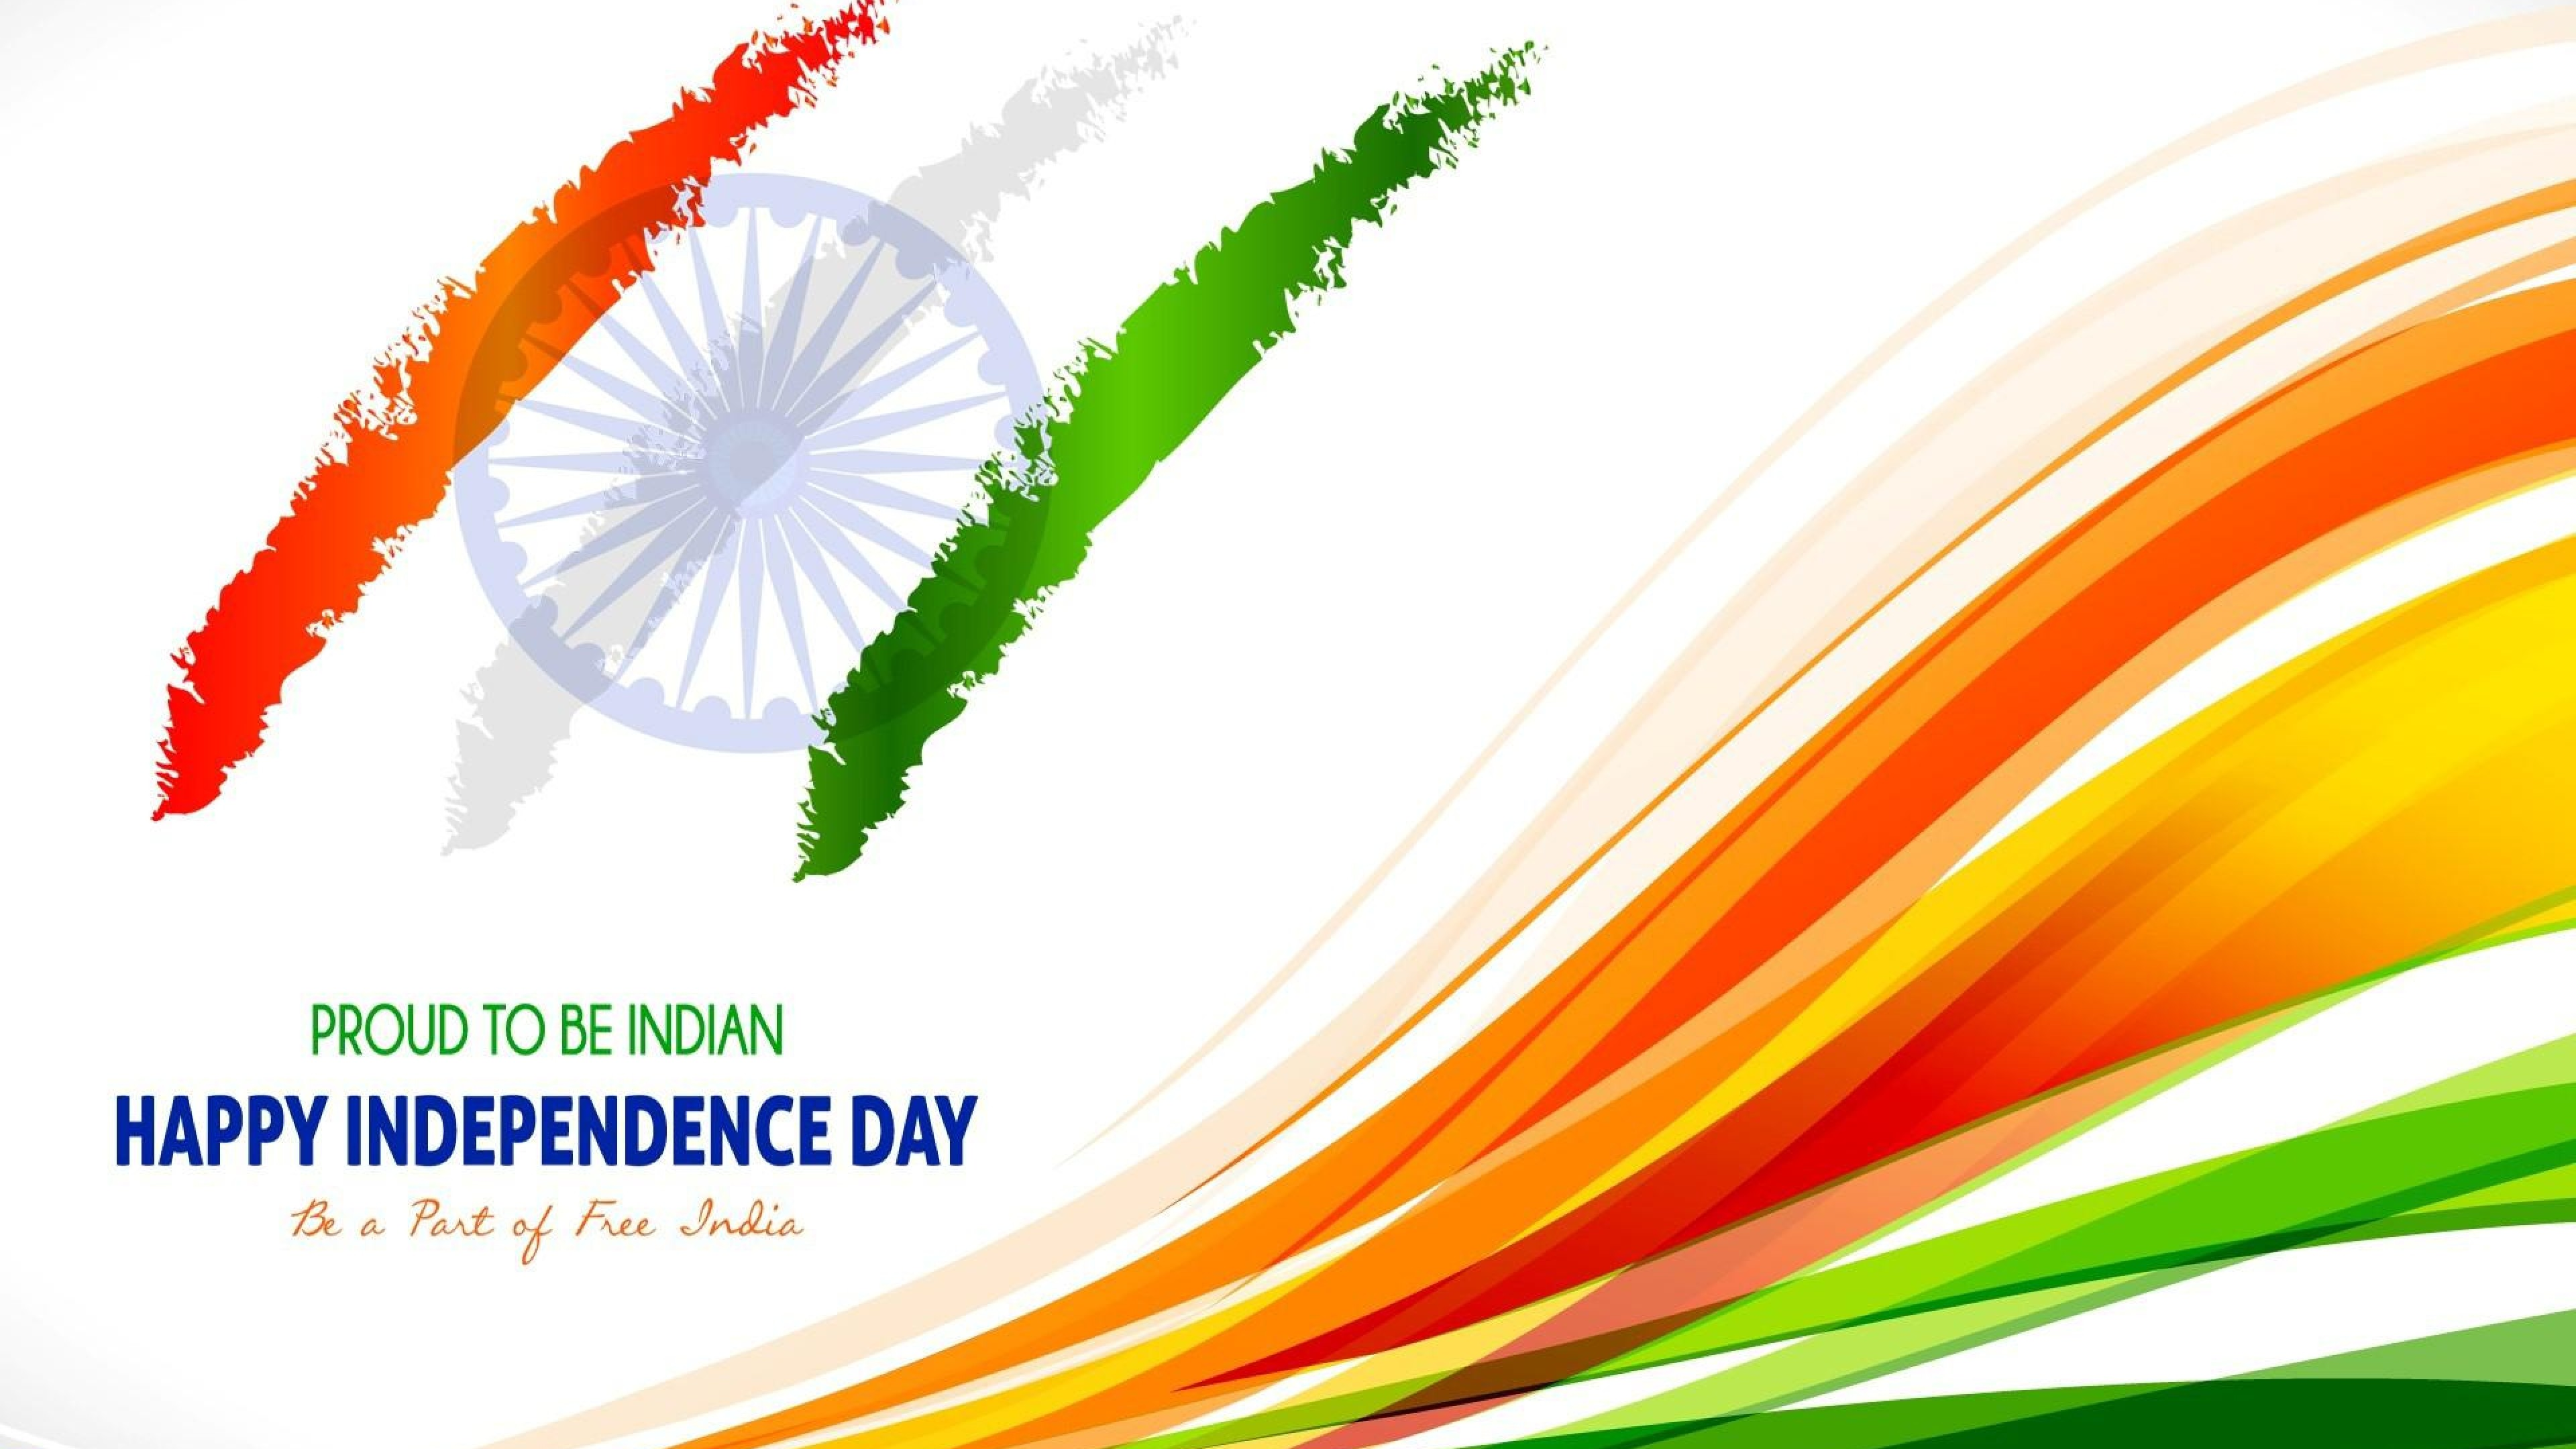 15 August Independence Day Hd Wallpaper: Indian Flag Wallpaper 2018 (78+ Images